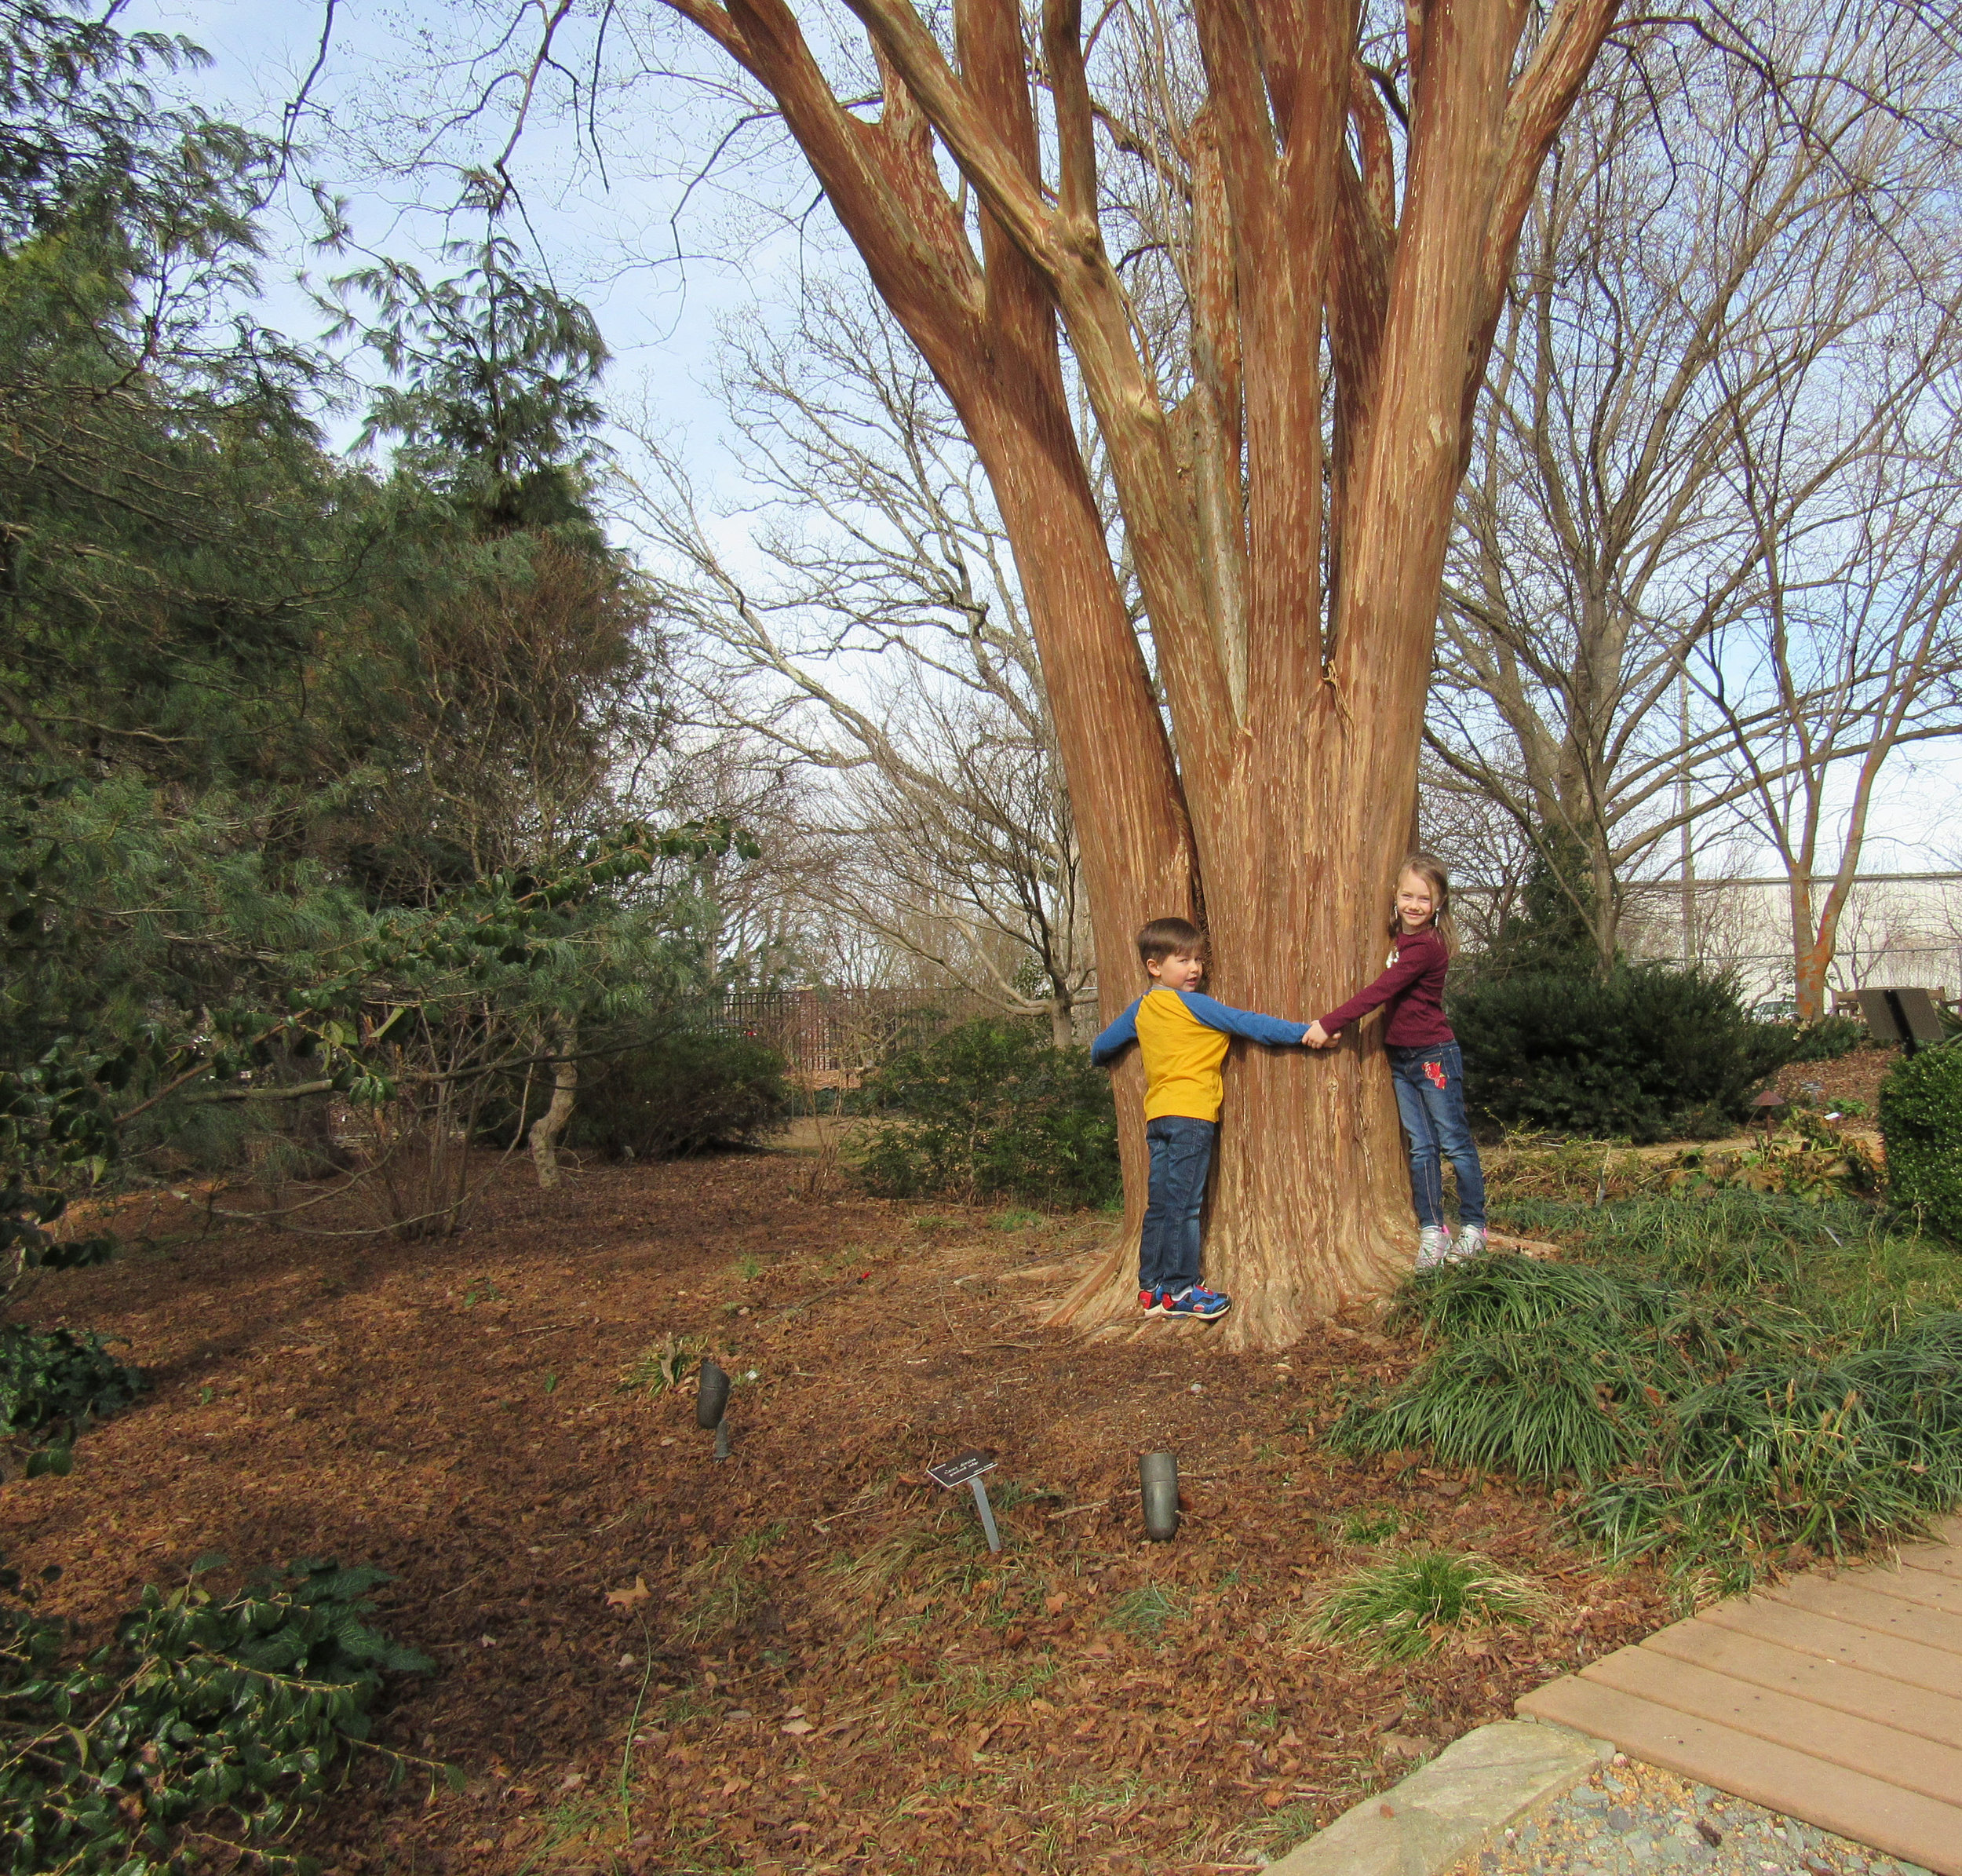 """""""Fantasy,"""" the giant Japanese crepe myrtle (Lagerstroemia fauriei), stands 50 feet tall near the Beryl Road entrance to the JC Raulston Arboretum. Planted from a seed in the mid 1950s, Fantasy is believed to be the tallest crepe myrtle of its type in the U.S. Fletcher Powell, 5, and sister, Linde, 6, can't reach even halfway around the huge trunk.  Photo by Charles Heatherly"""